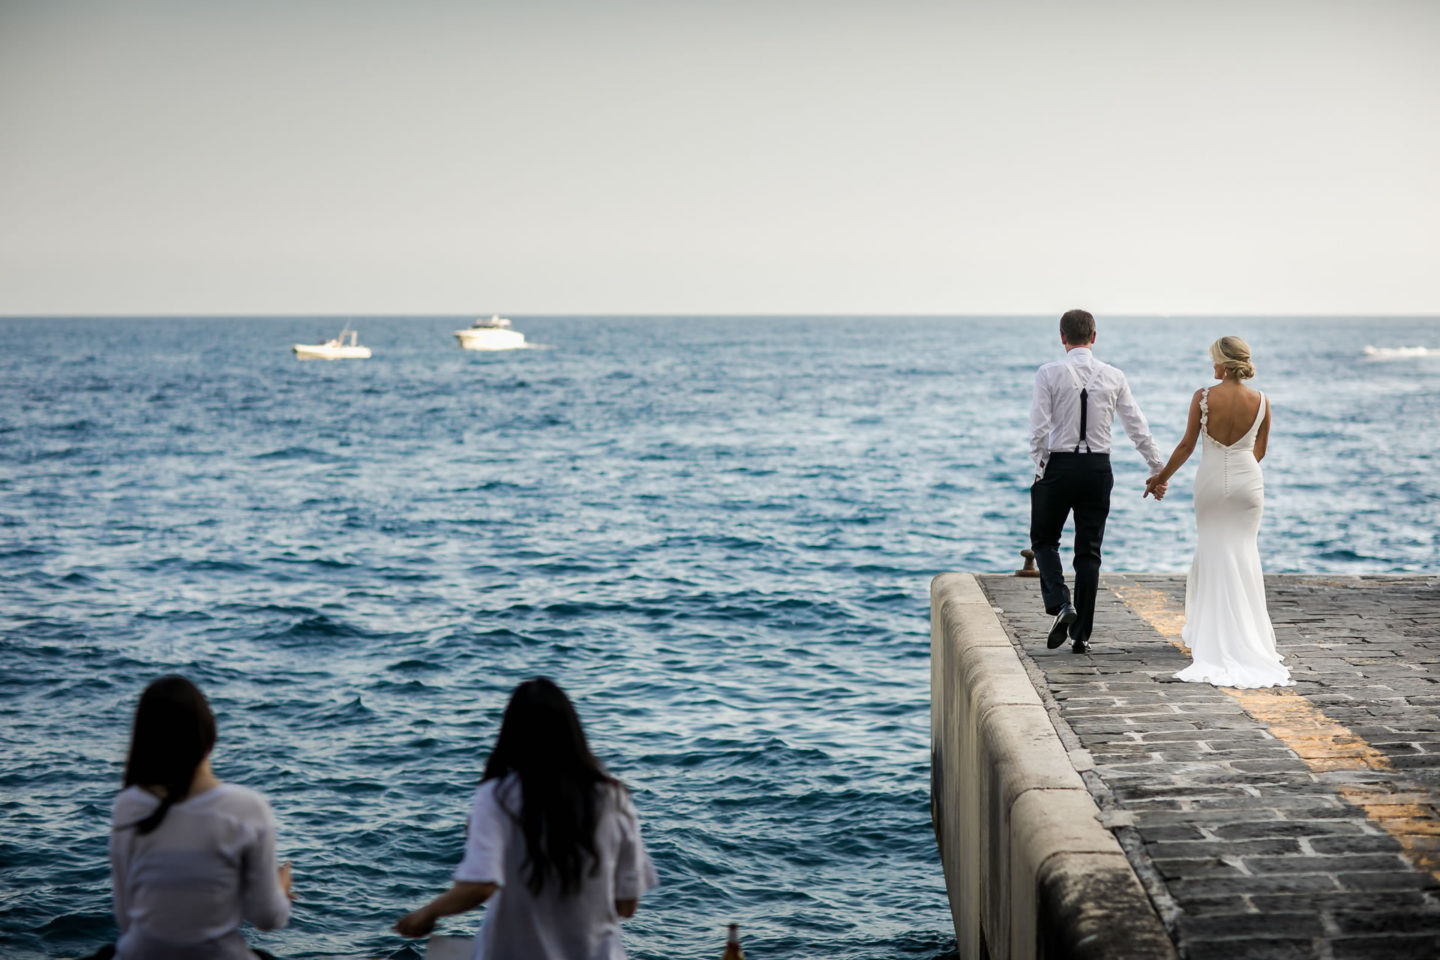 Pier :: Wedding in Positano. Sea and love :: Wedding photographer based in Florence Tuscany Italy :: photo-40 :: Pier